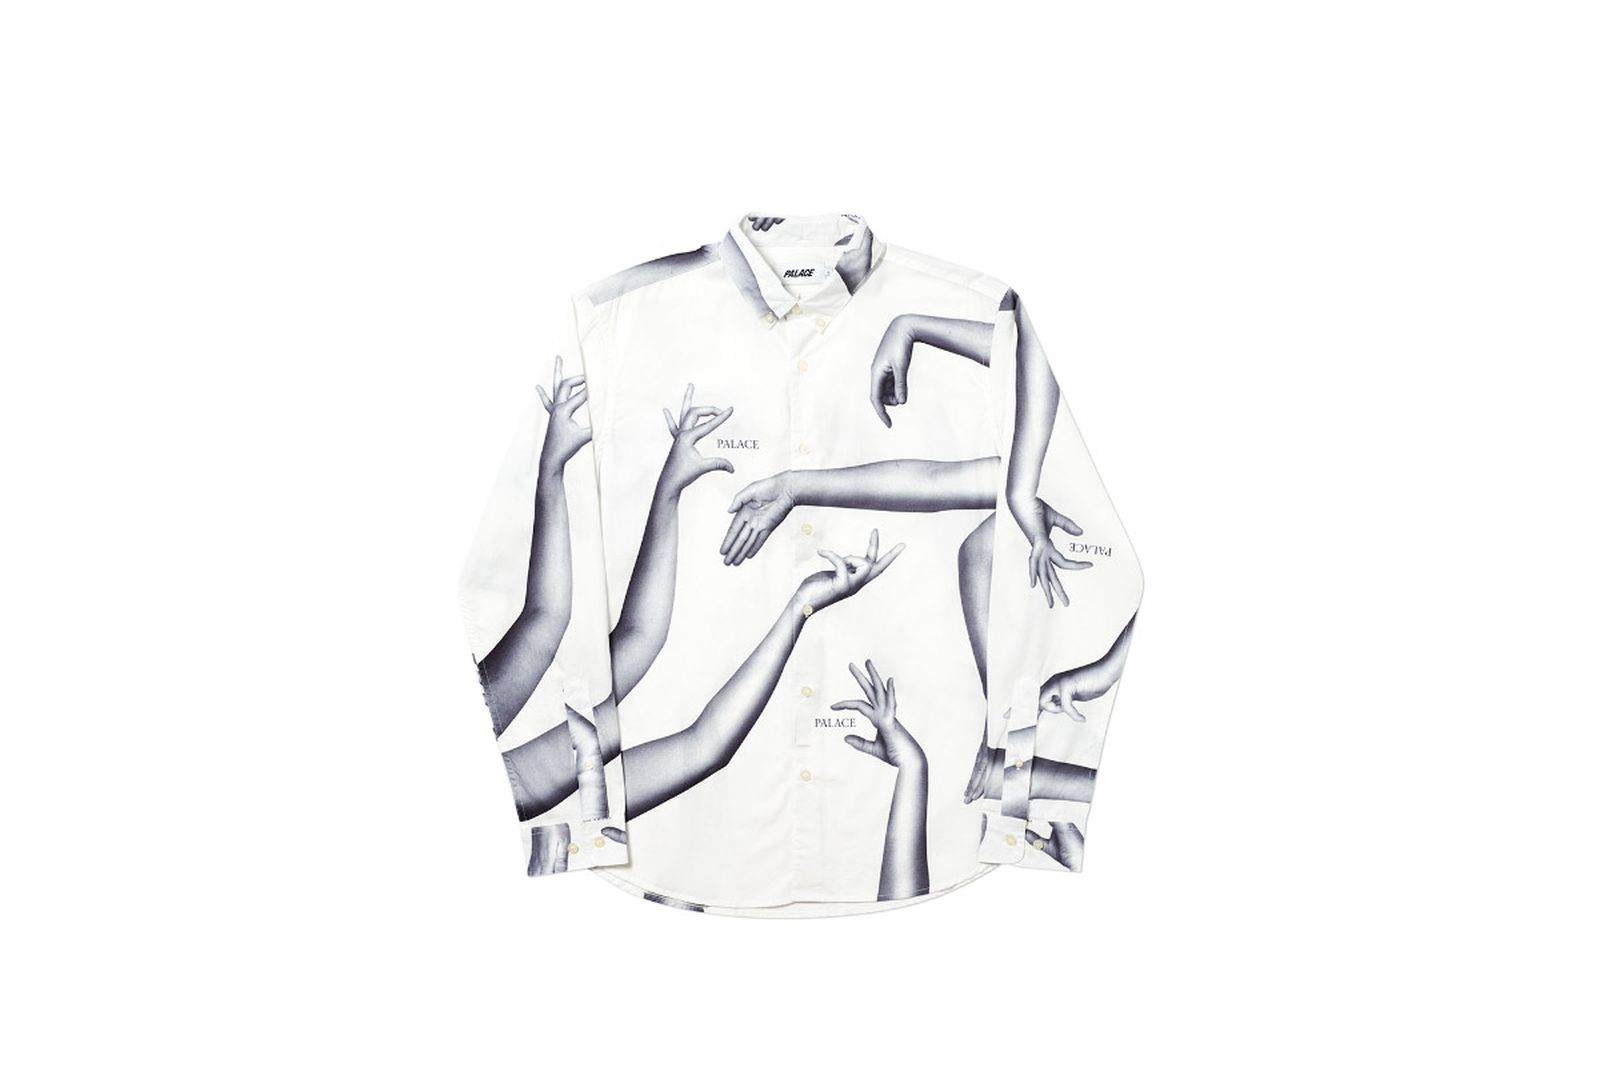 Palace 2019 Autumn Shirt Armbus white front fw19